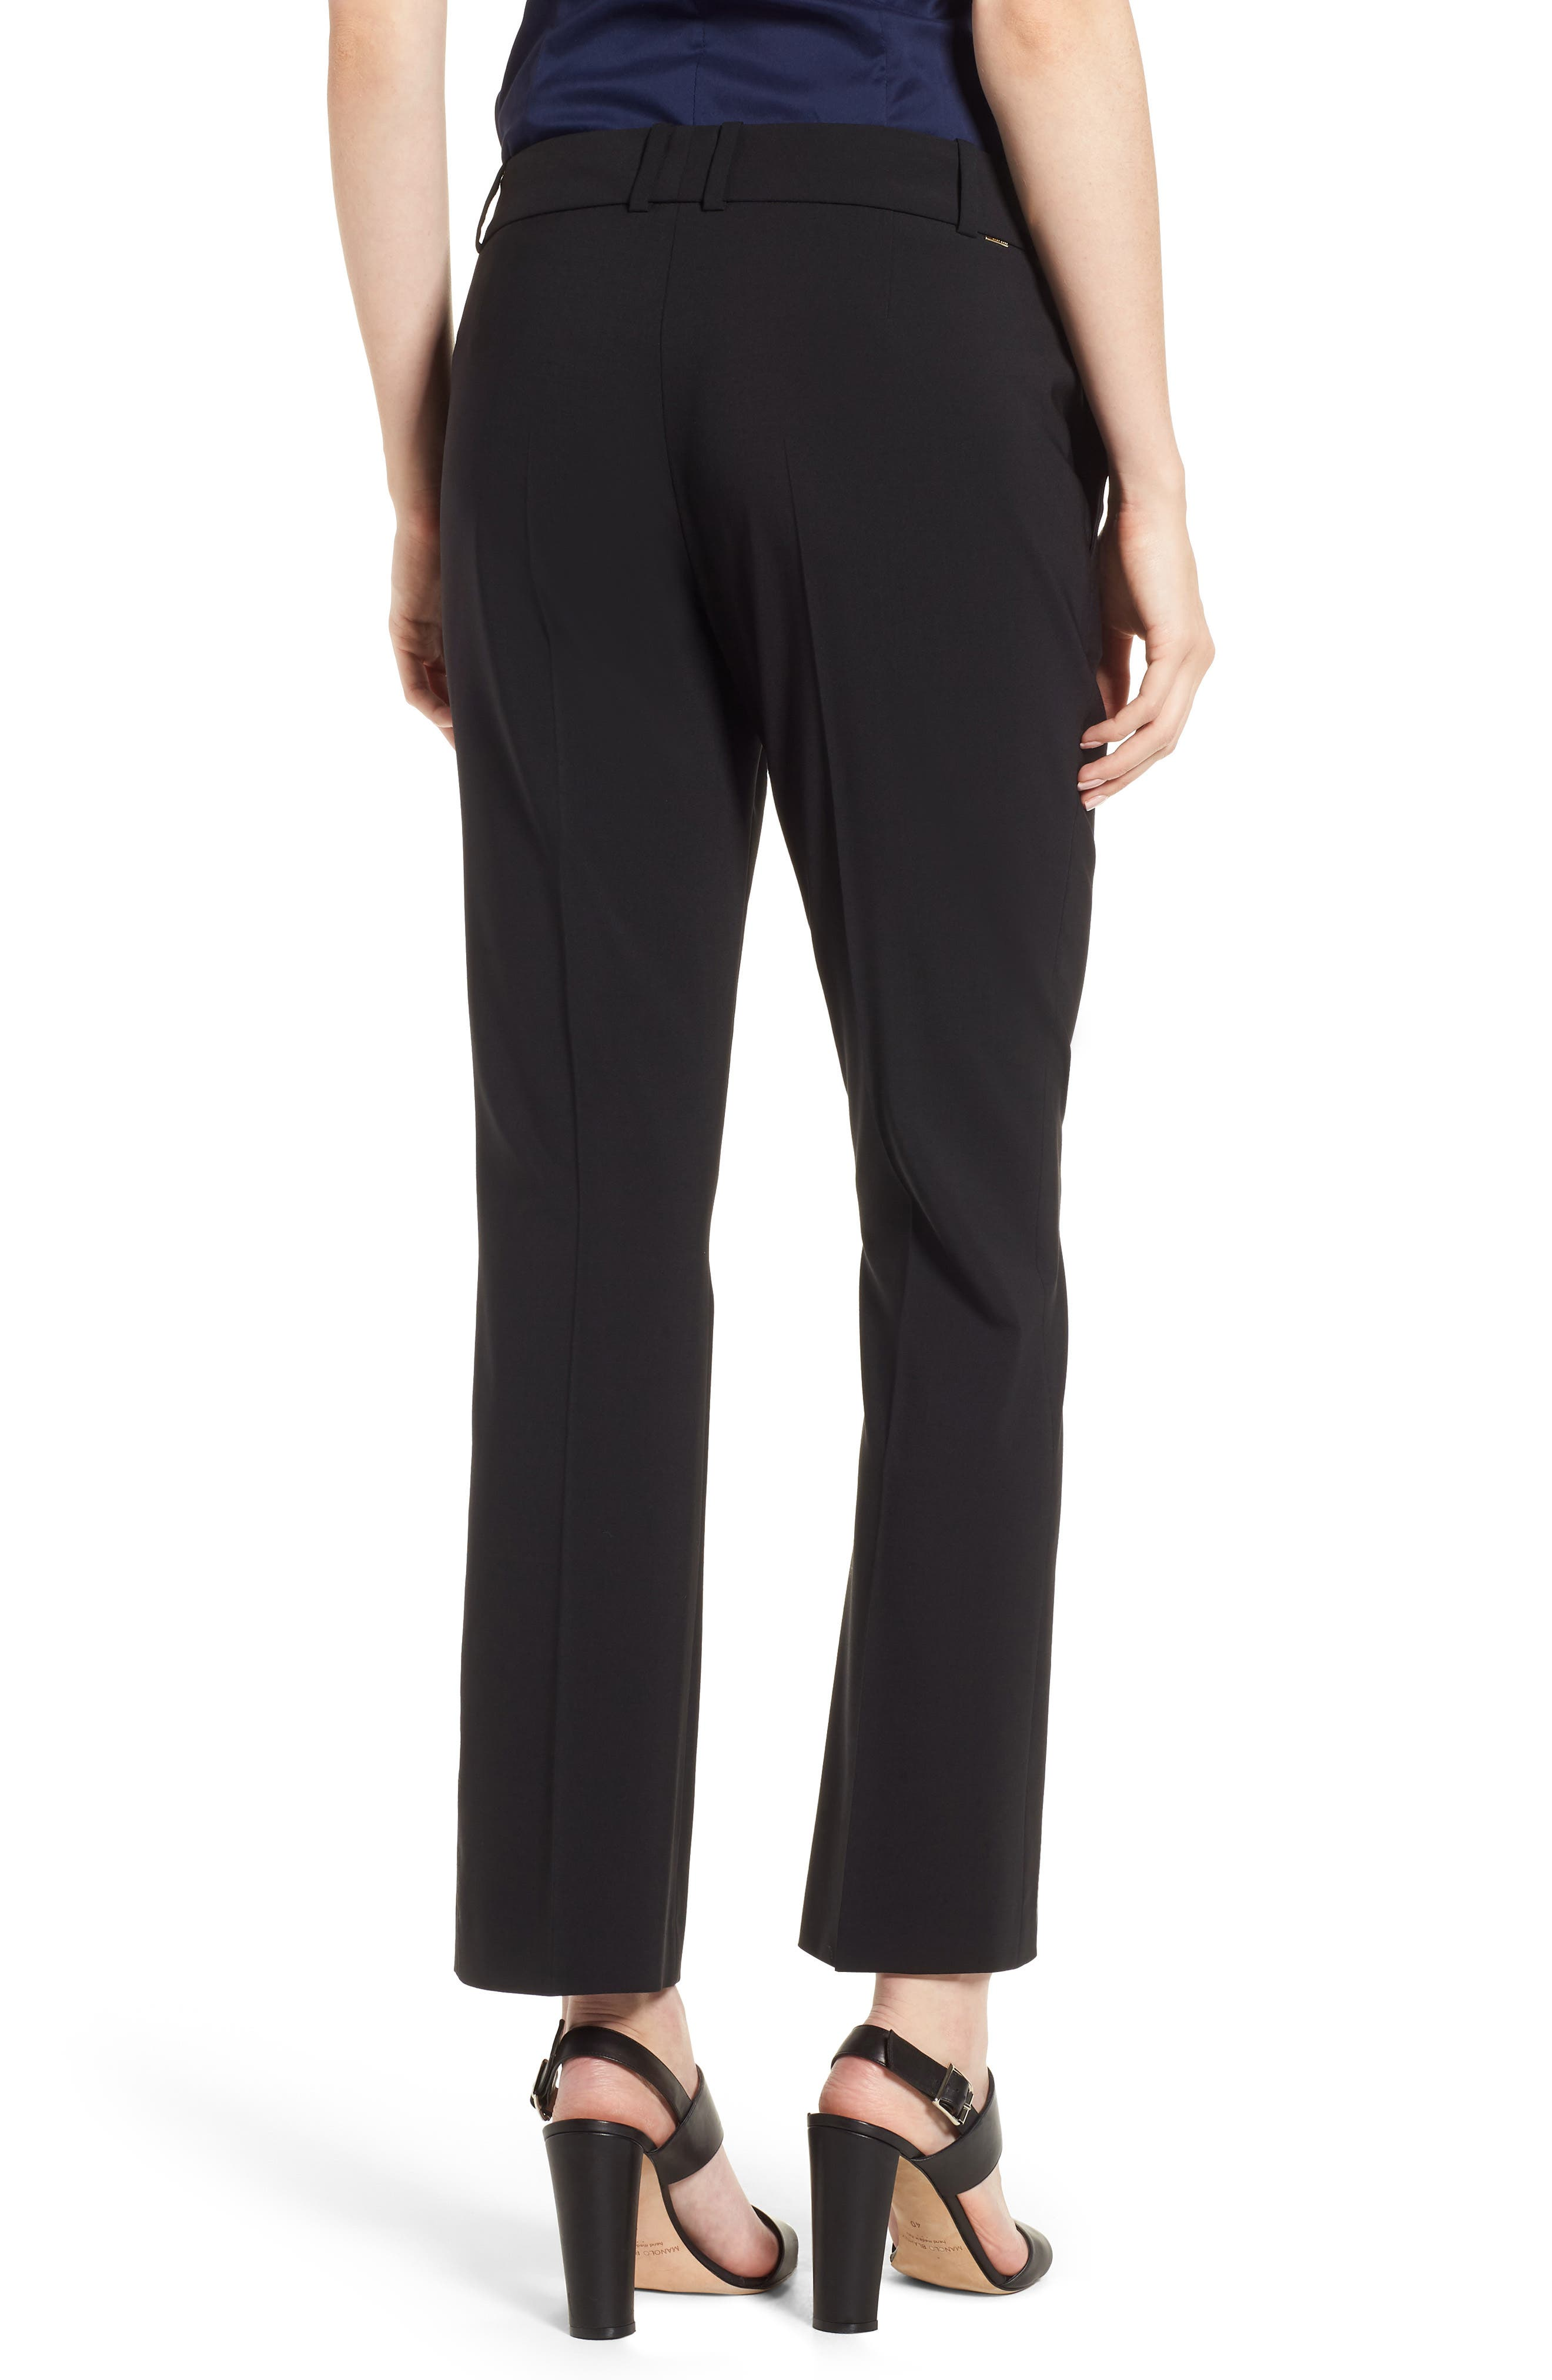 Talenara Tropical Stretch Wool Ankle Trousers,                             Alternate thumbnail 2, color,                             Black